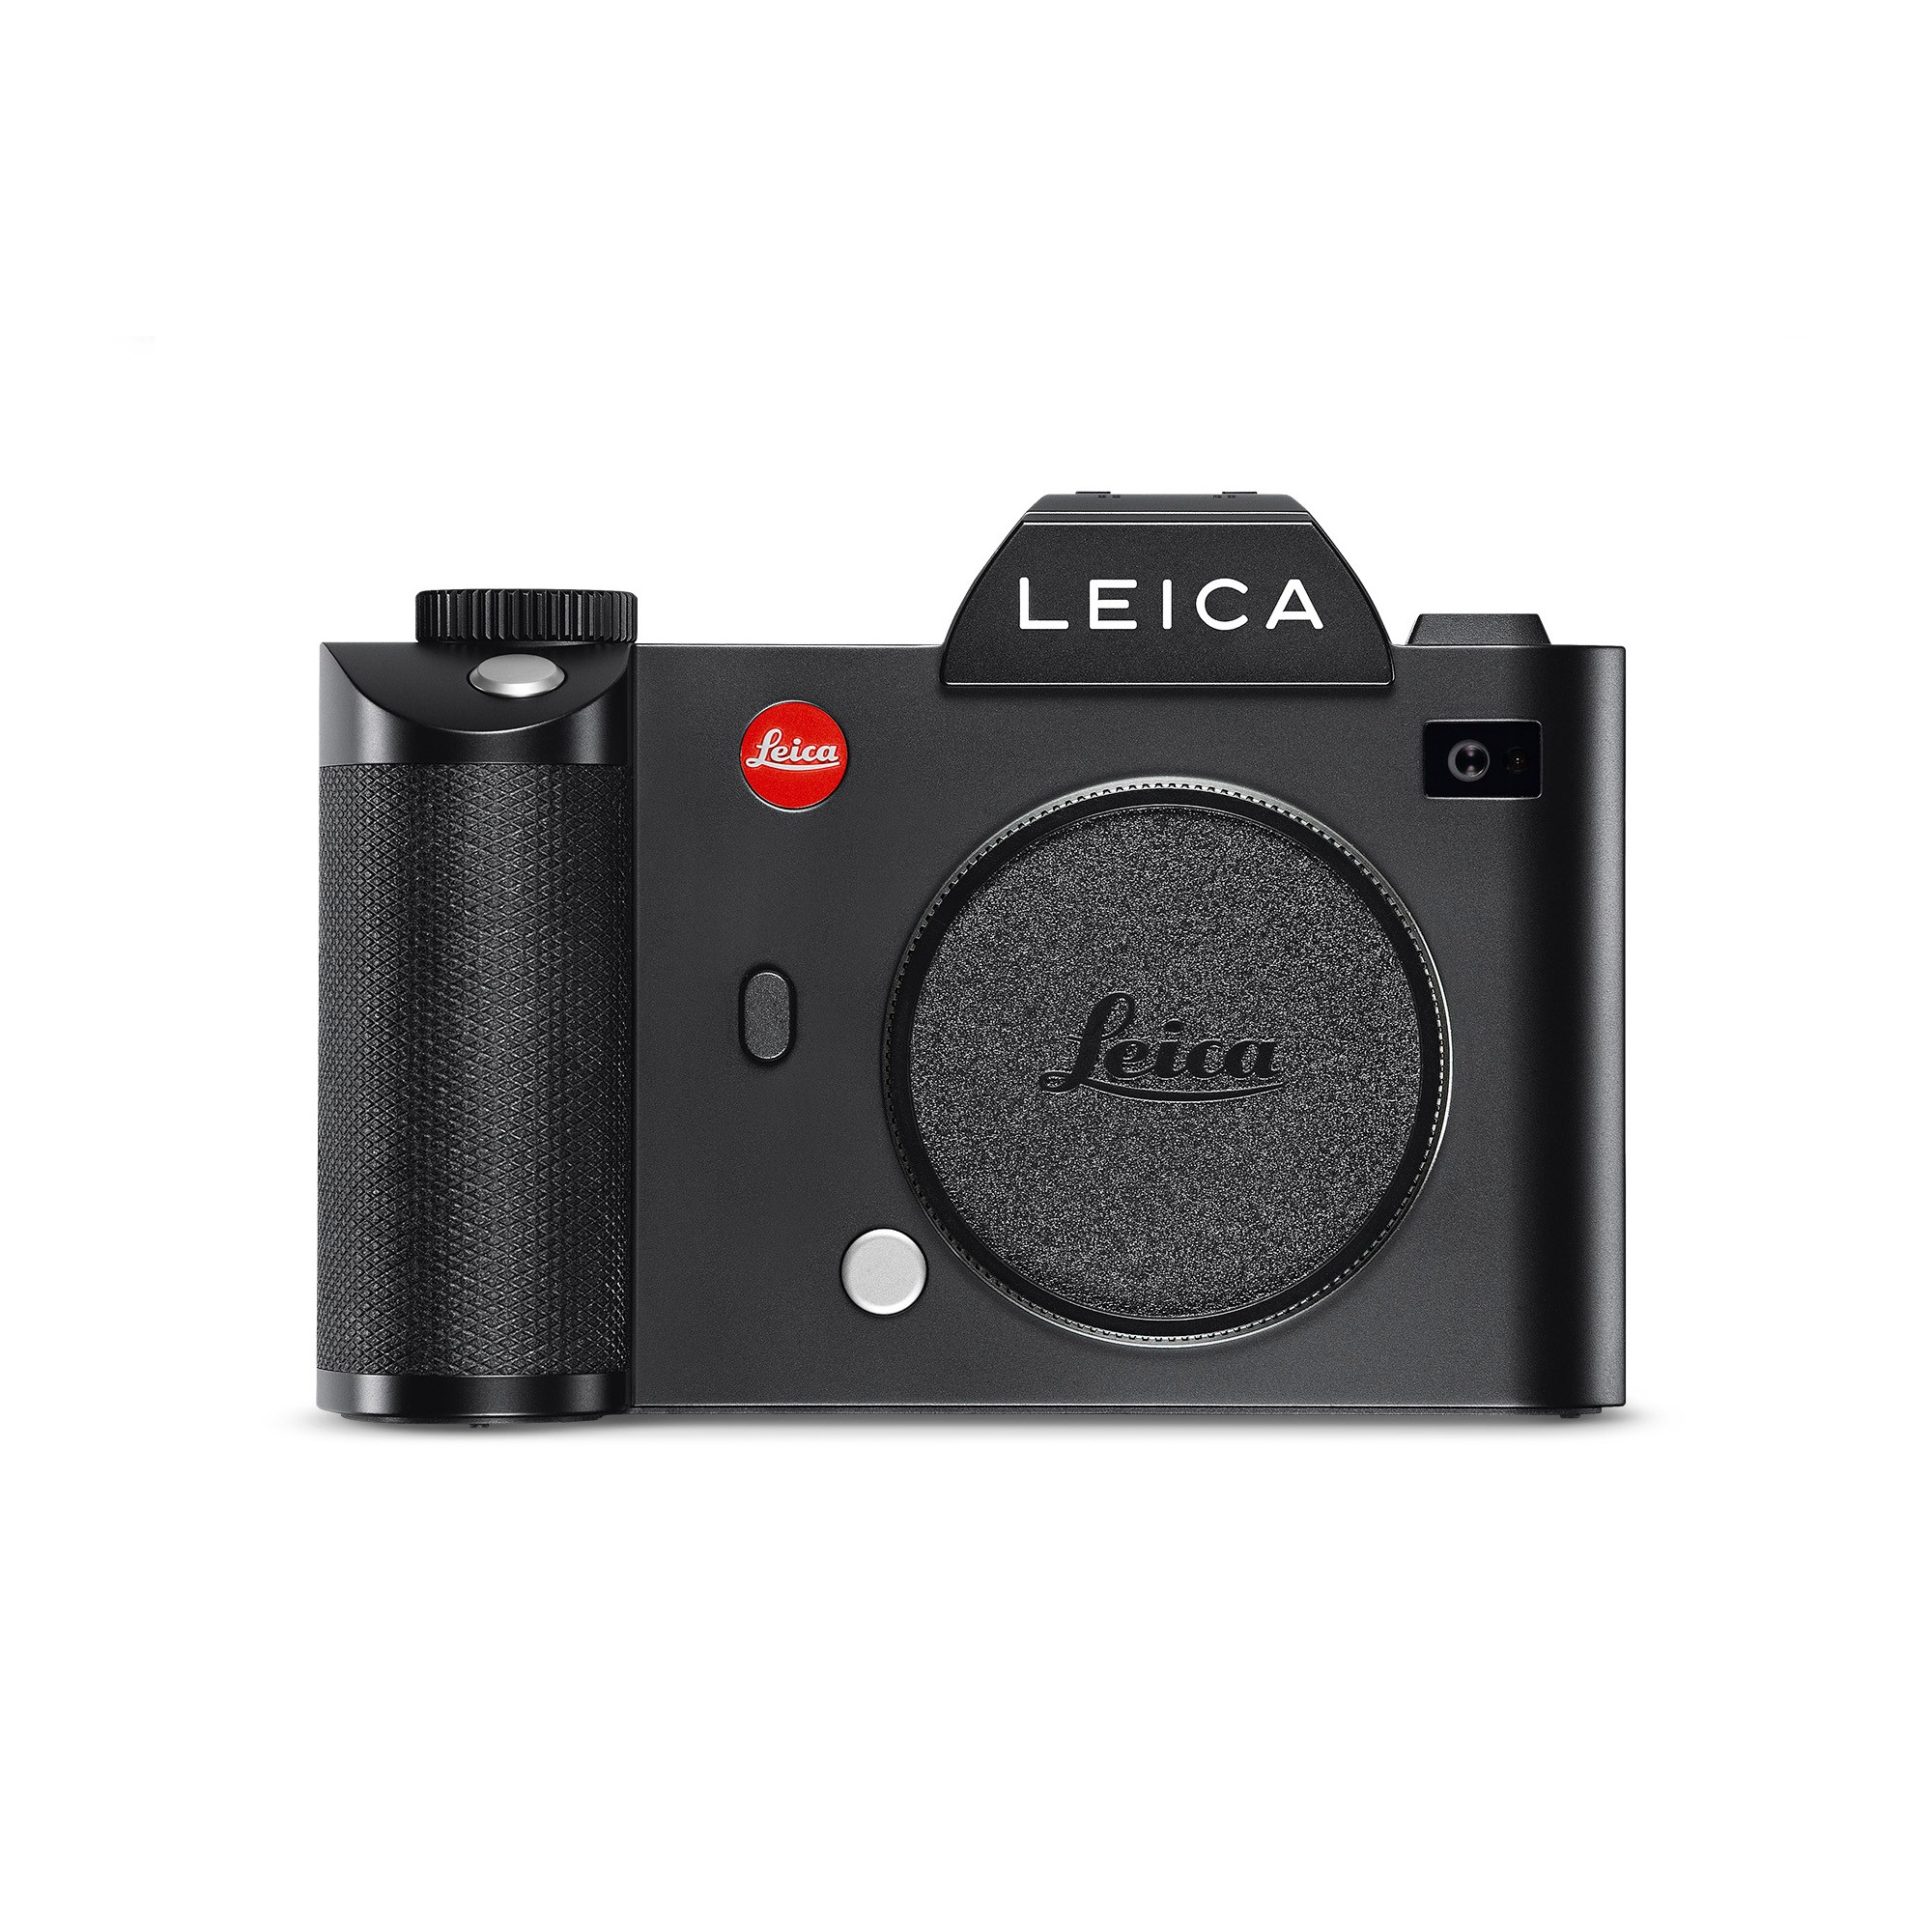 Leica SL (Typ 601) available to rent / verhuur / location at 50.8 Studio • Belgïe, Belgique, Belgium, Huur, Leica, Location, Louer, Photo, Rent, Rental, Sony, Strobe, Studio, Verhuur, Video